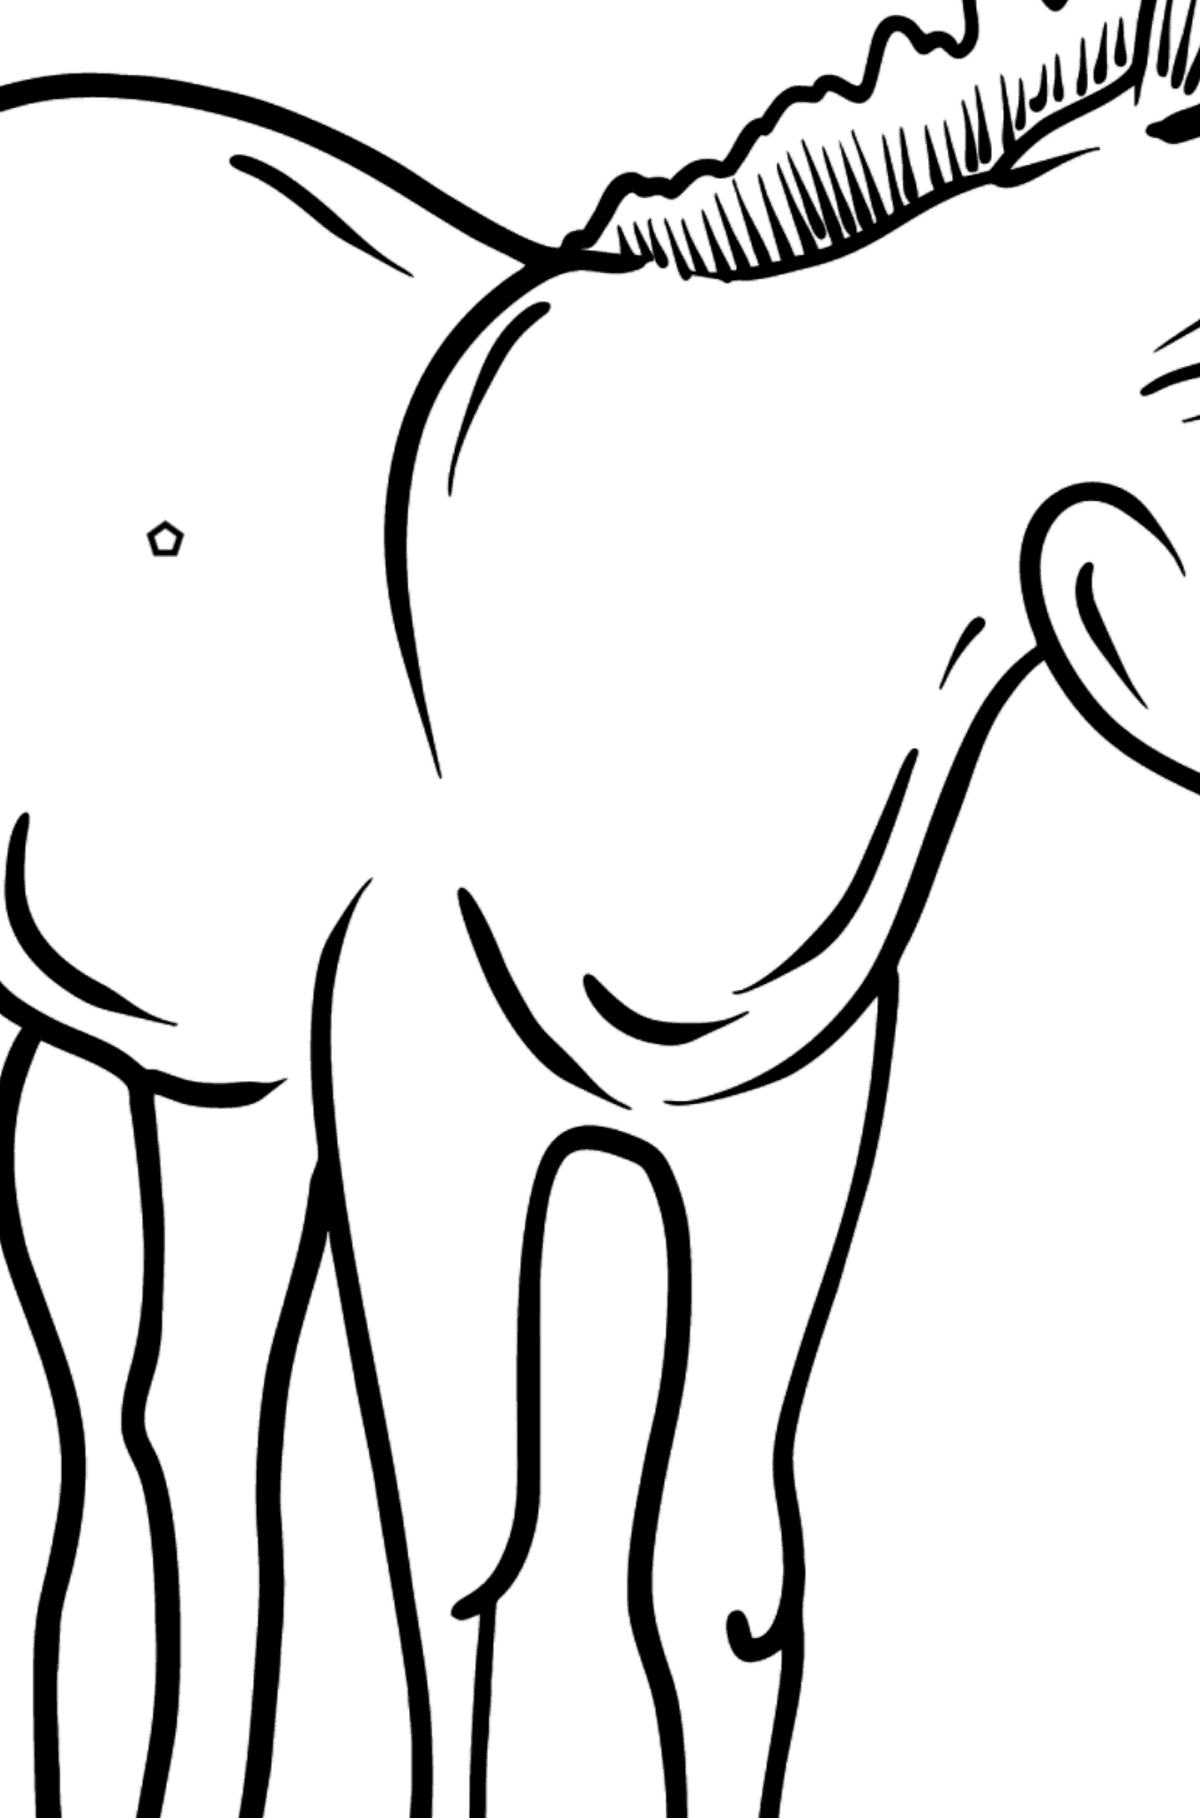 Donkey coloring page - Coloring by Geometric Shapes for Kids